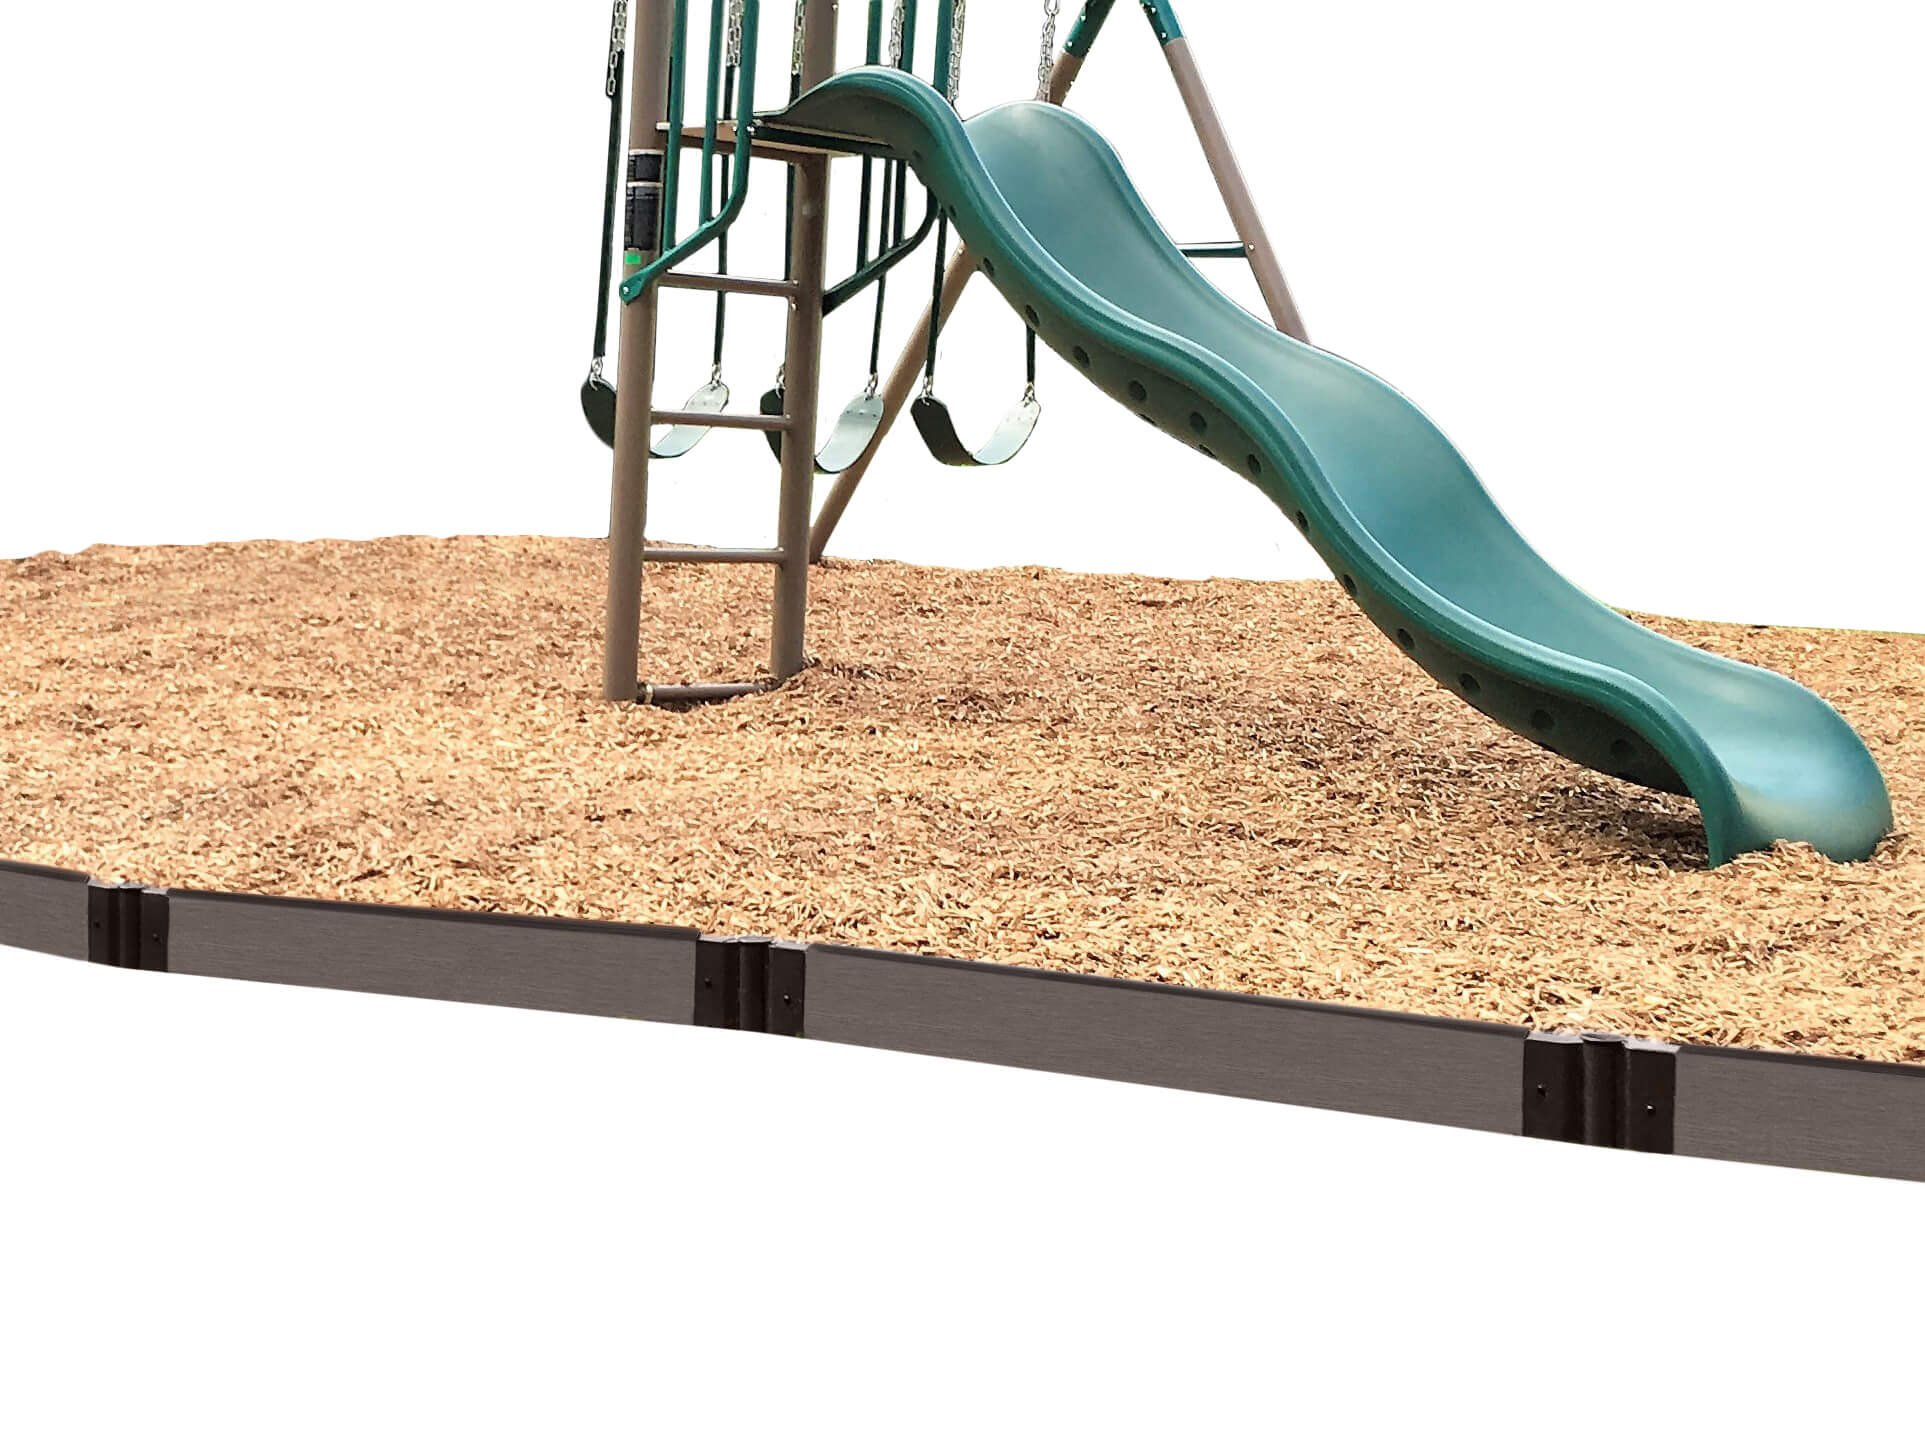 Frame It All 300001445 Weathered Wood Straight Playground Border 16' -1'' Profile, Gray